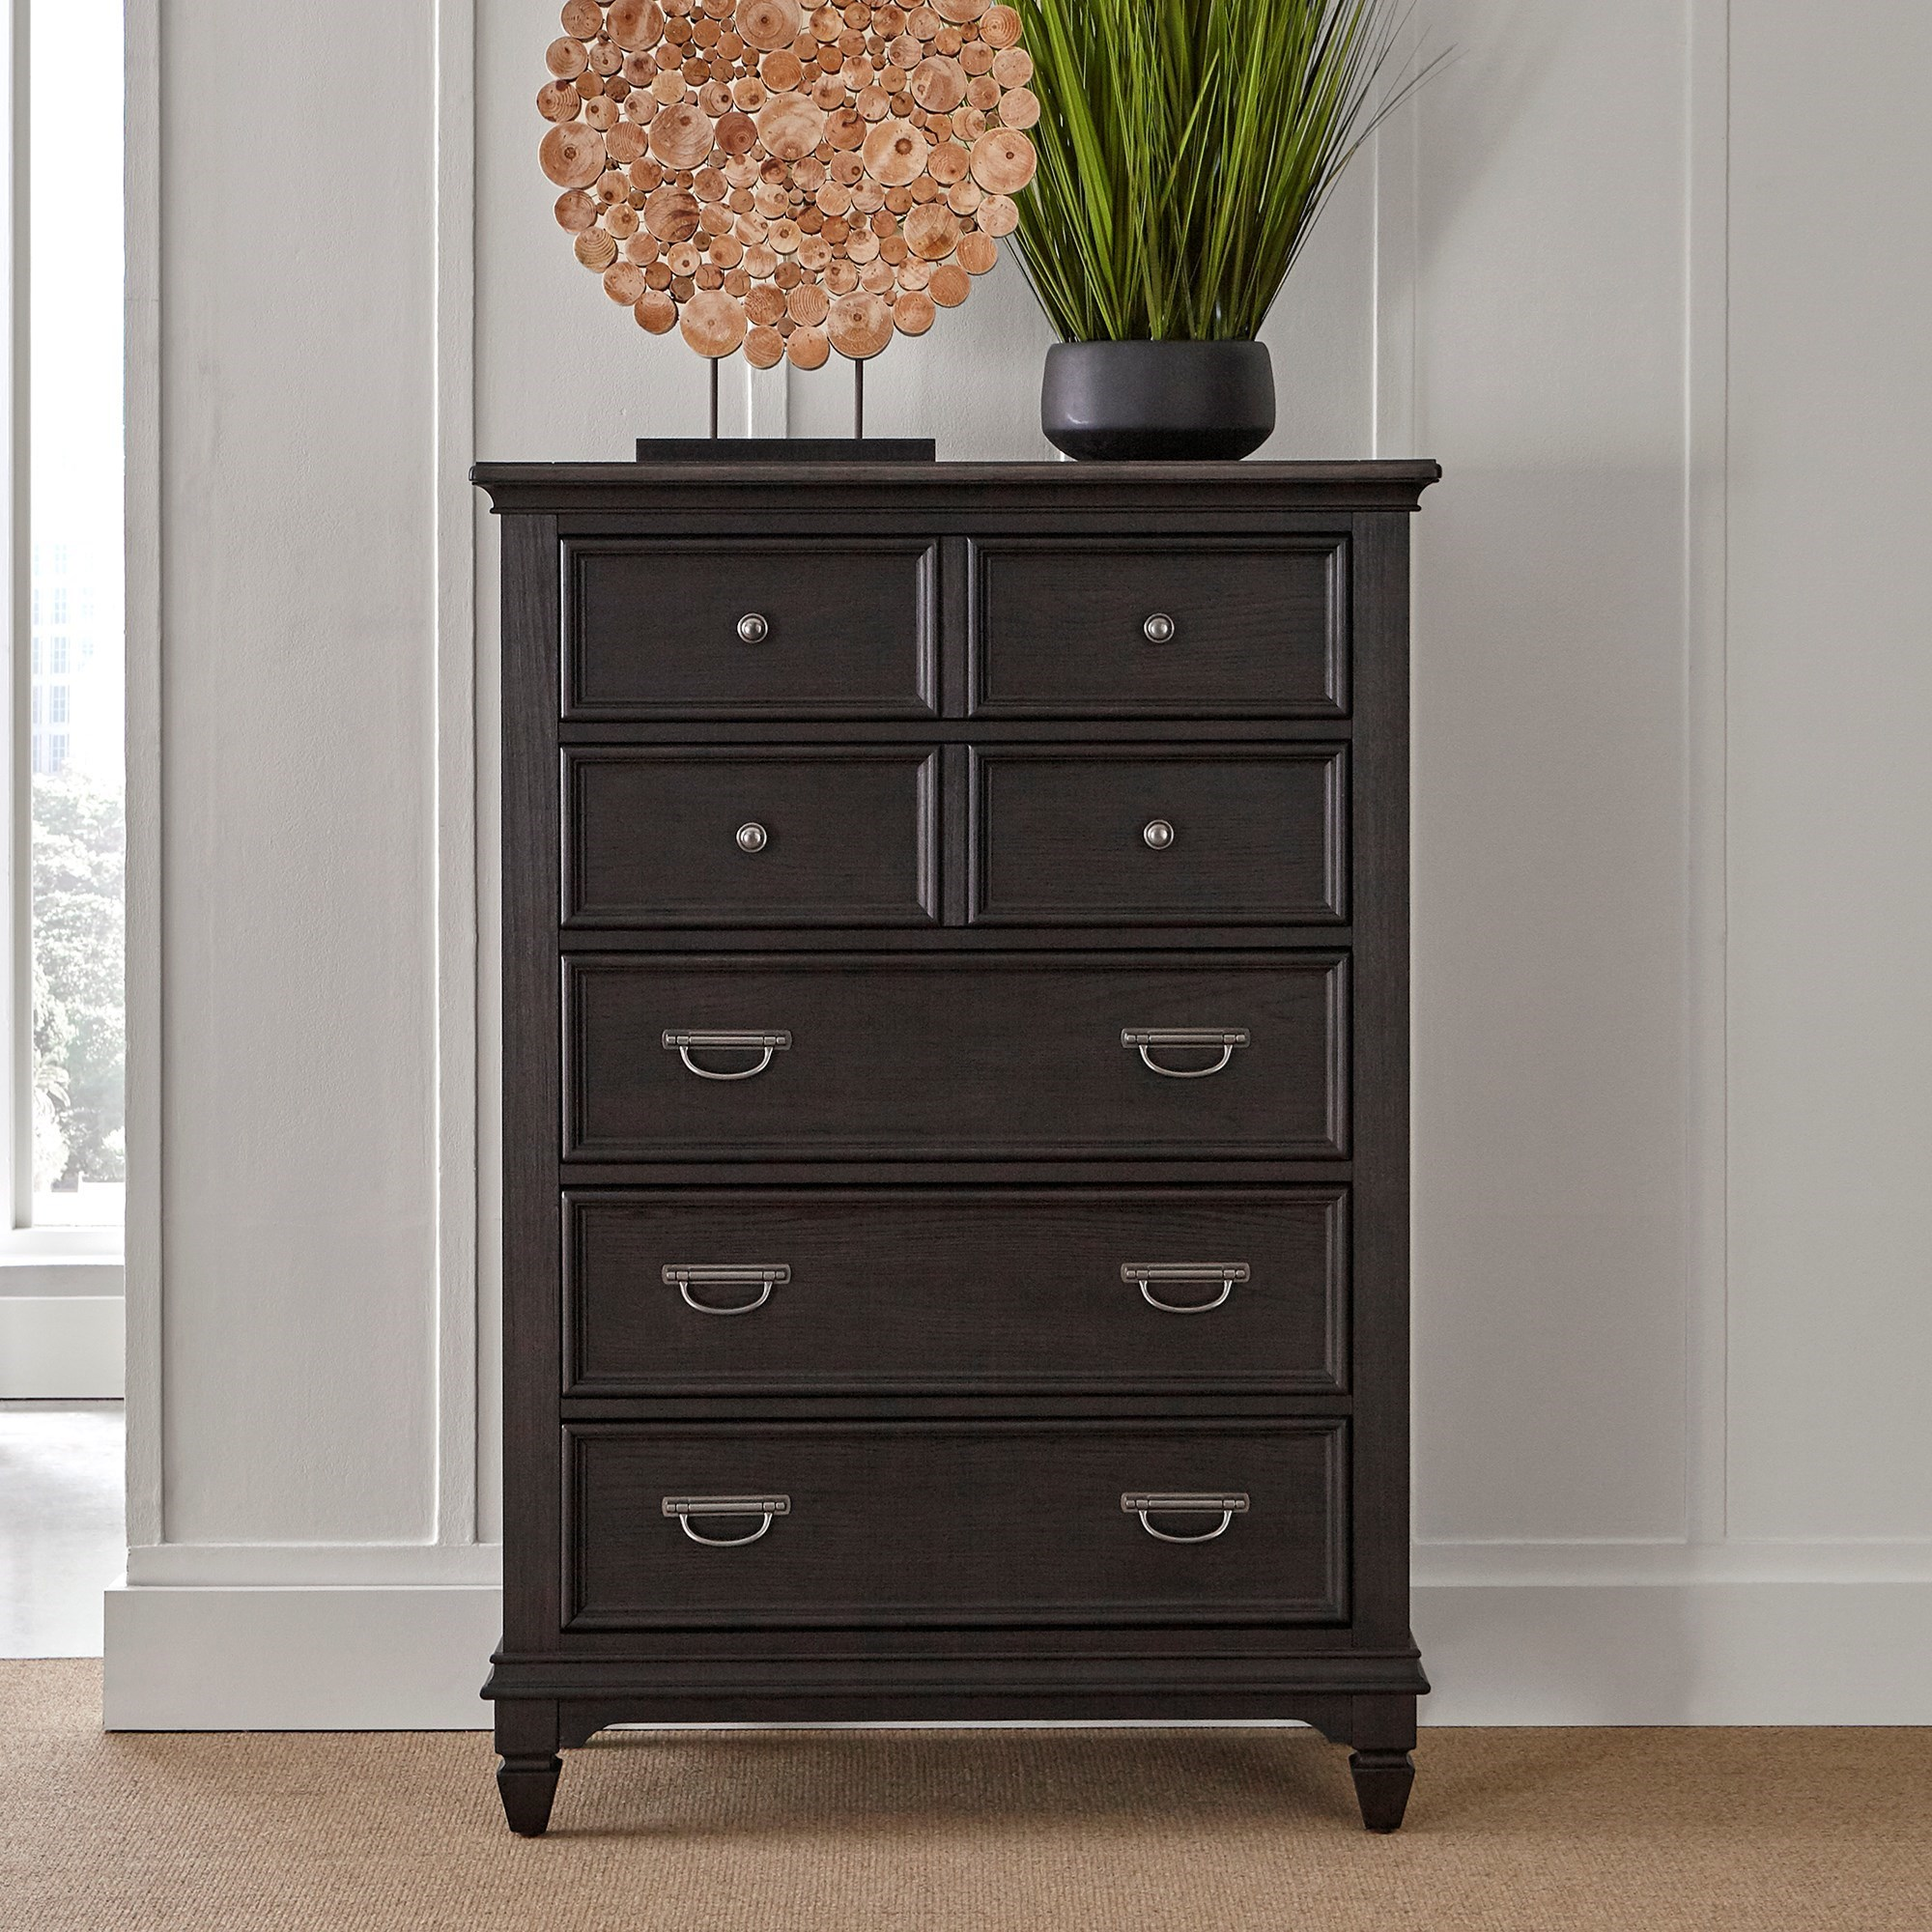 Allyson Park 5 Drawer Chest by Libby at Walker's Furniture